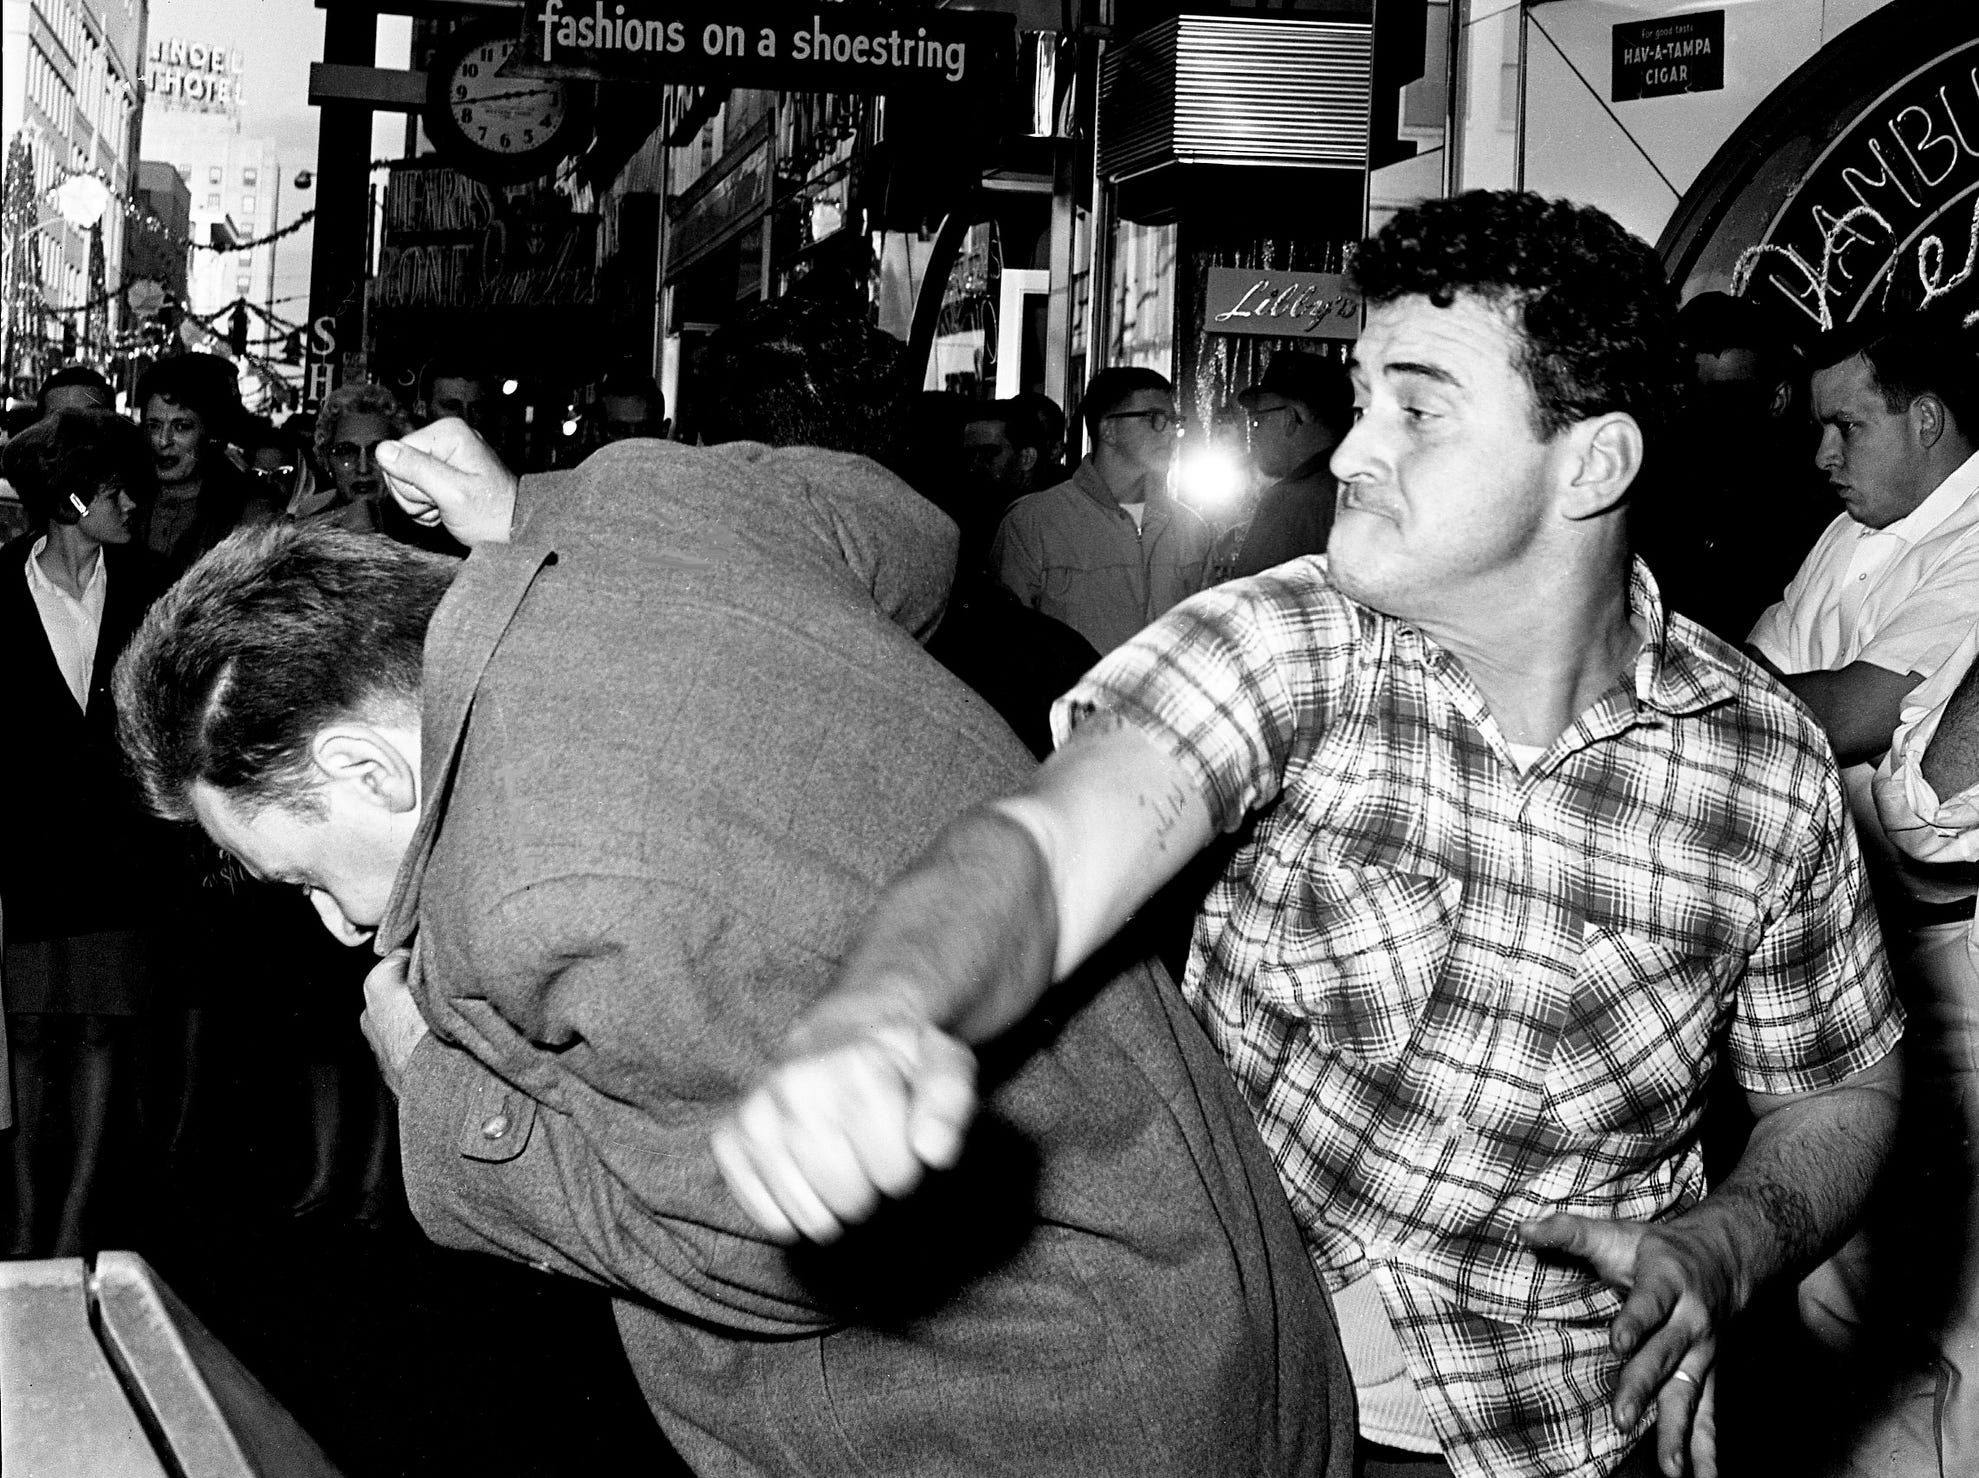 Dr. David Kotelchuck, left, assistant professor of physics at Vanderbilt University and a member of a sit-in group, ducks as restaurant employee Bobby Gene Taylor swings at him during a demonstration in front of Herschel's Tic Toc restaurant on Church Street on Dec. 8, 1962. Nashville Police arrived a few minutes later and things simmered down.